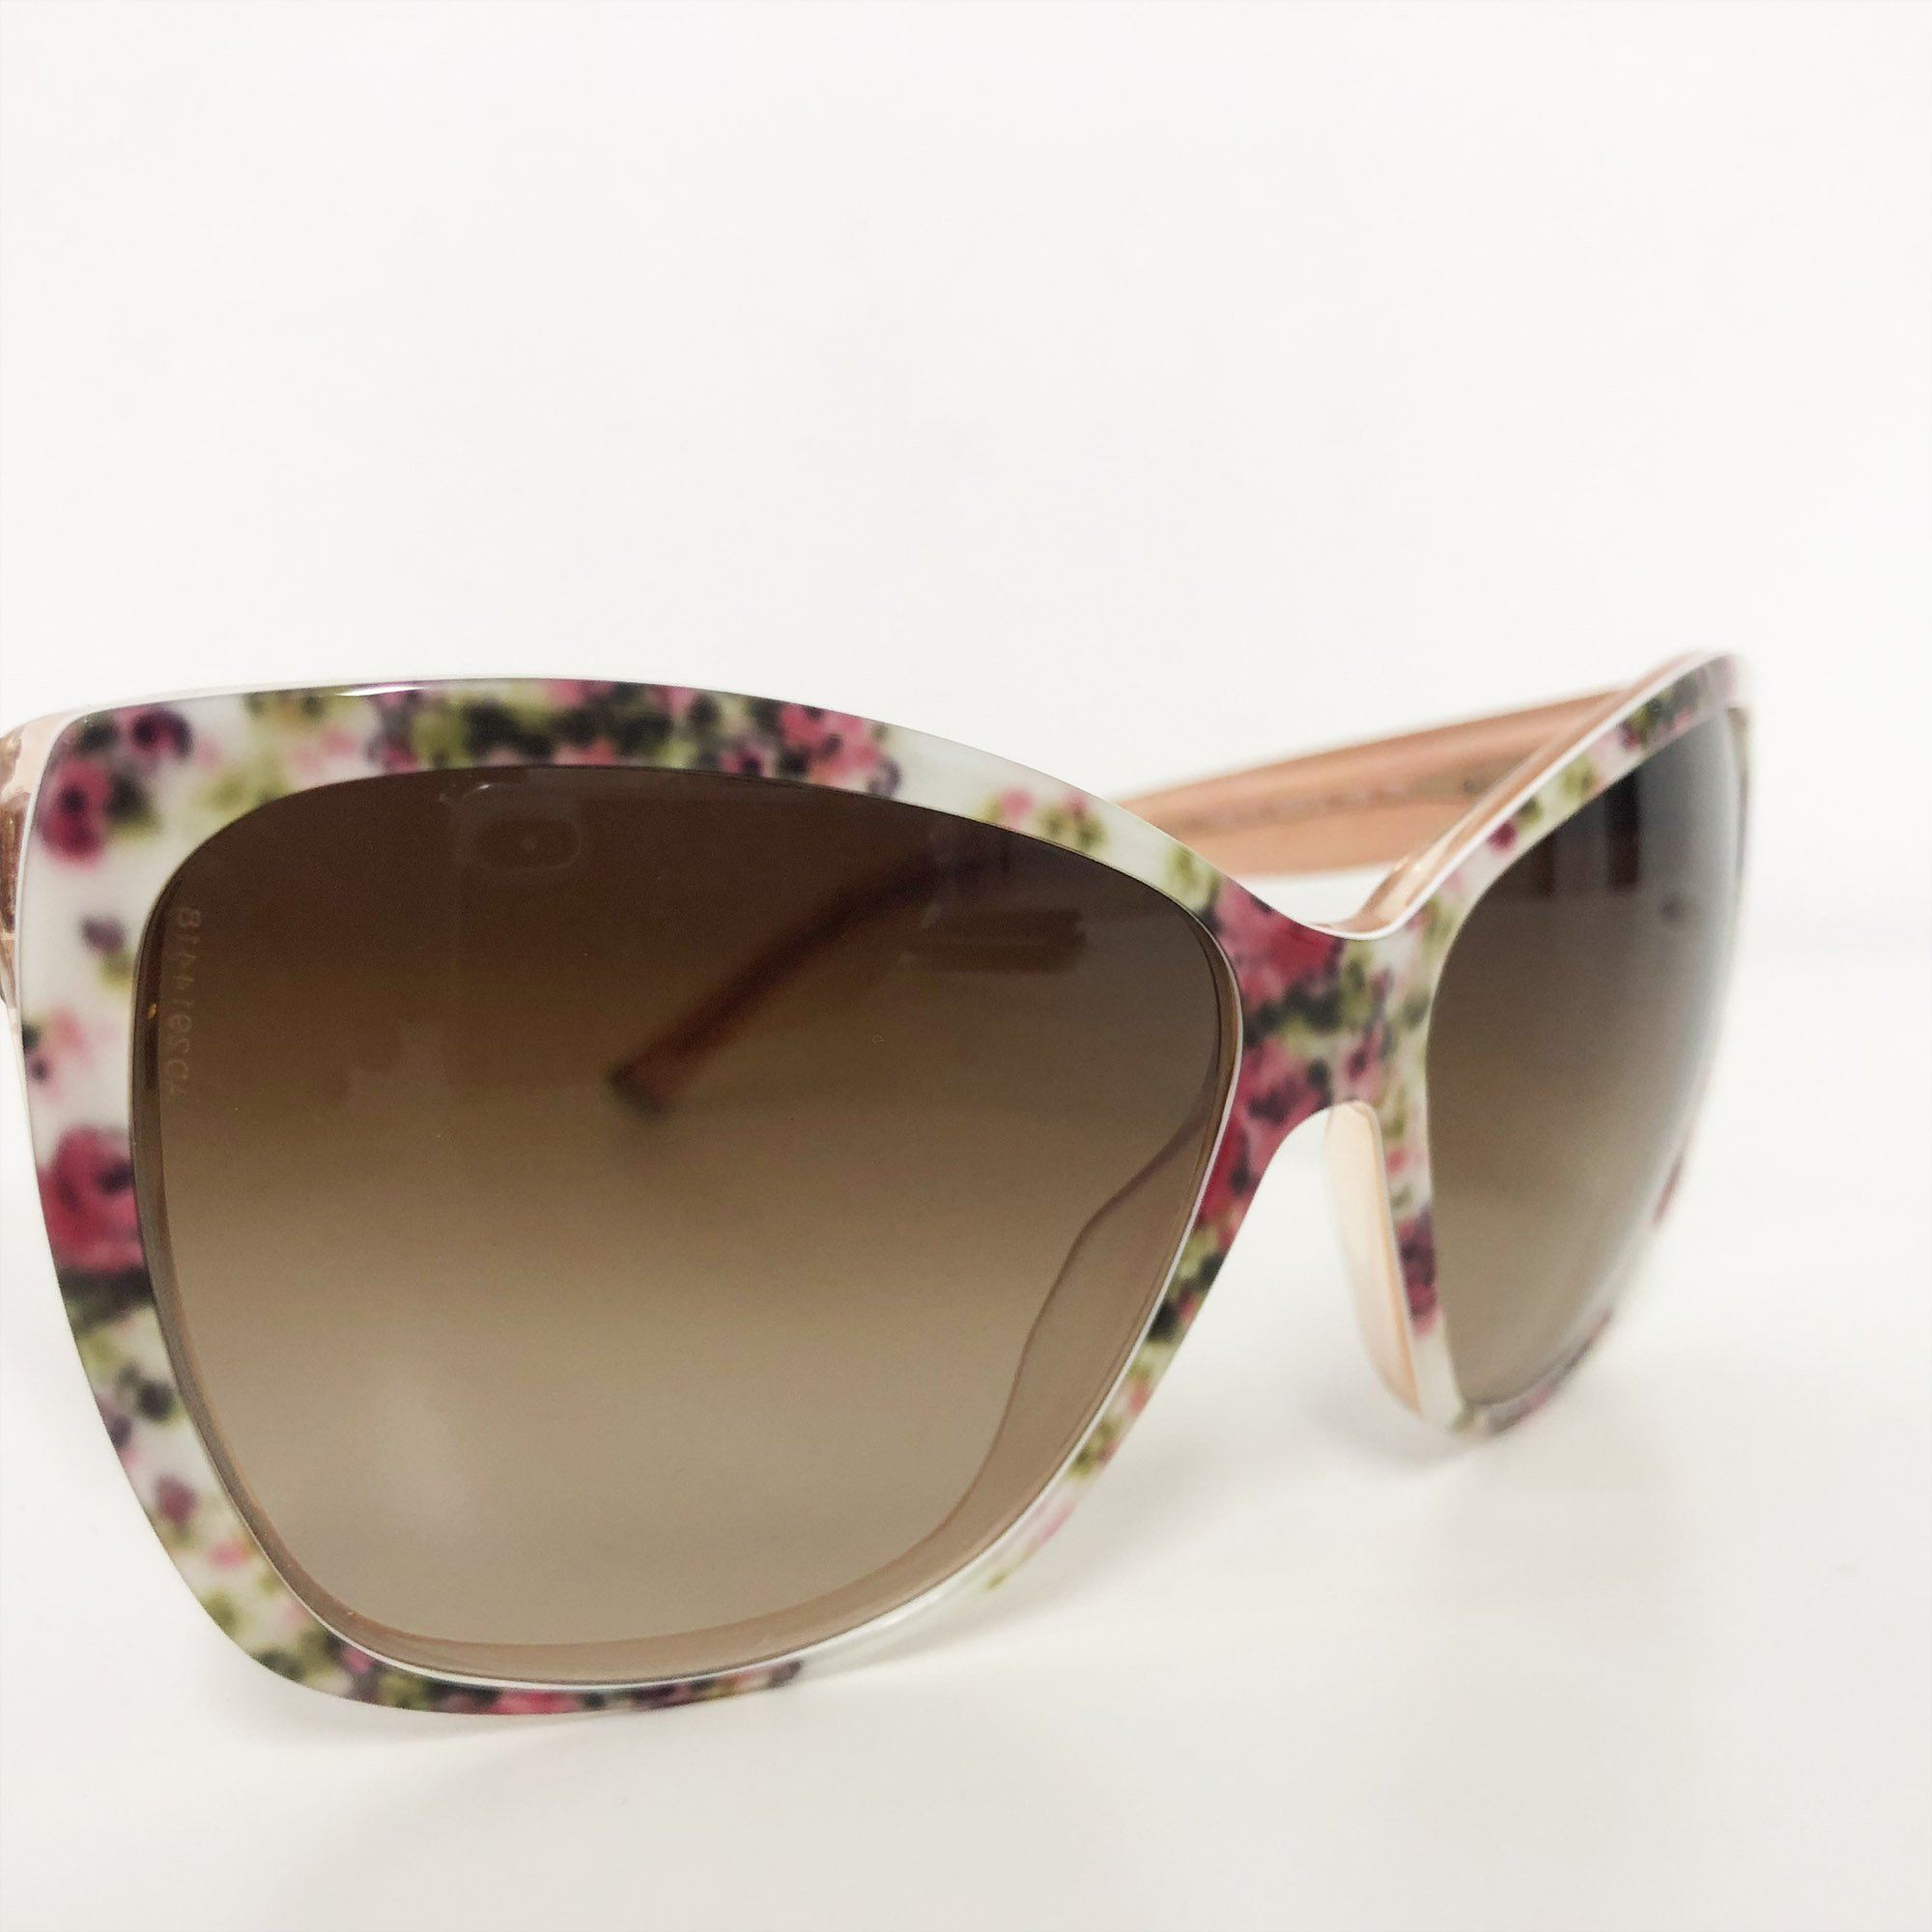 Dolce & Gabbana Floral Printed Sunglasses